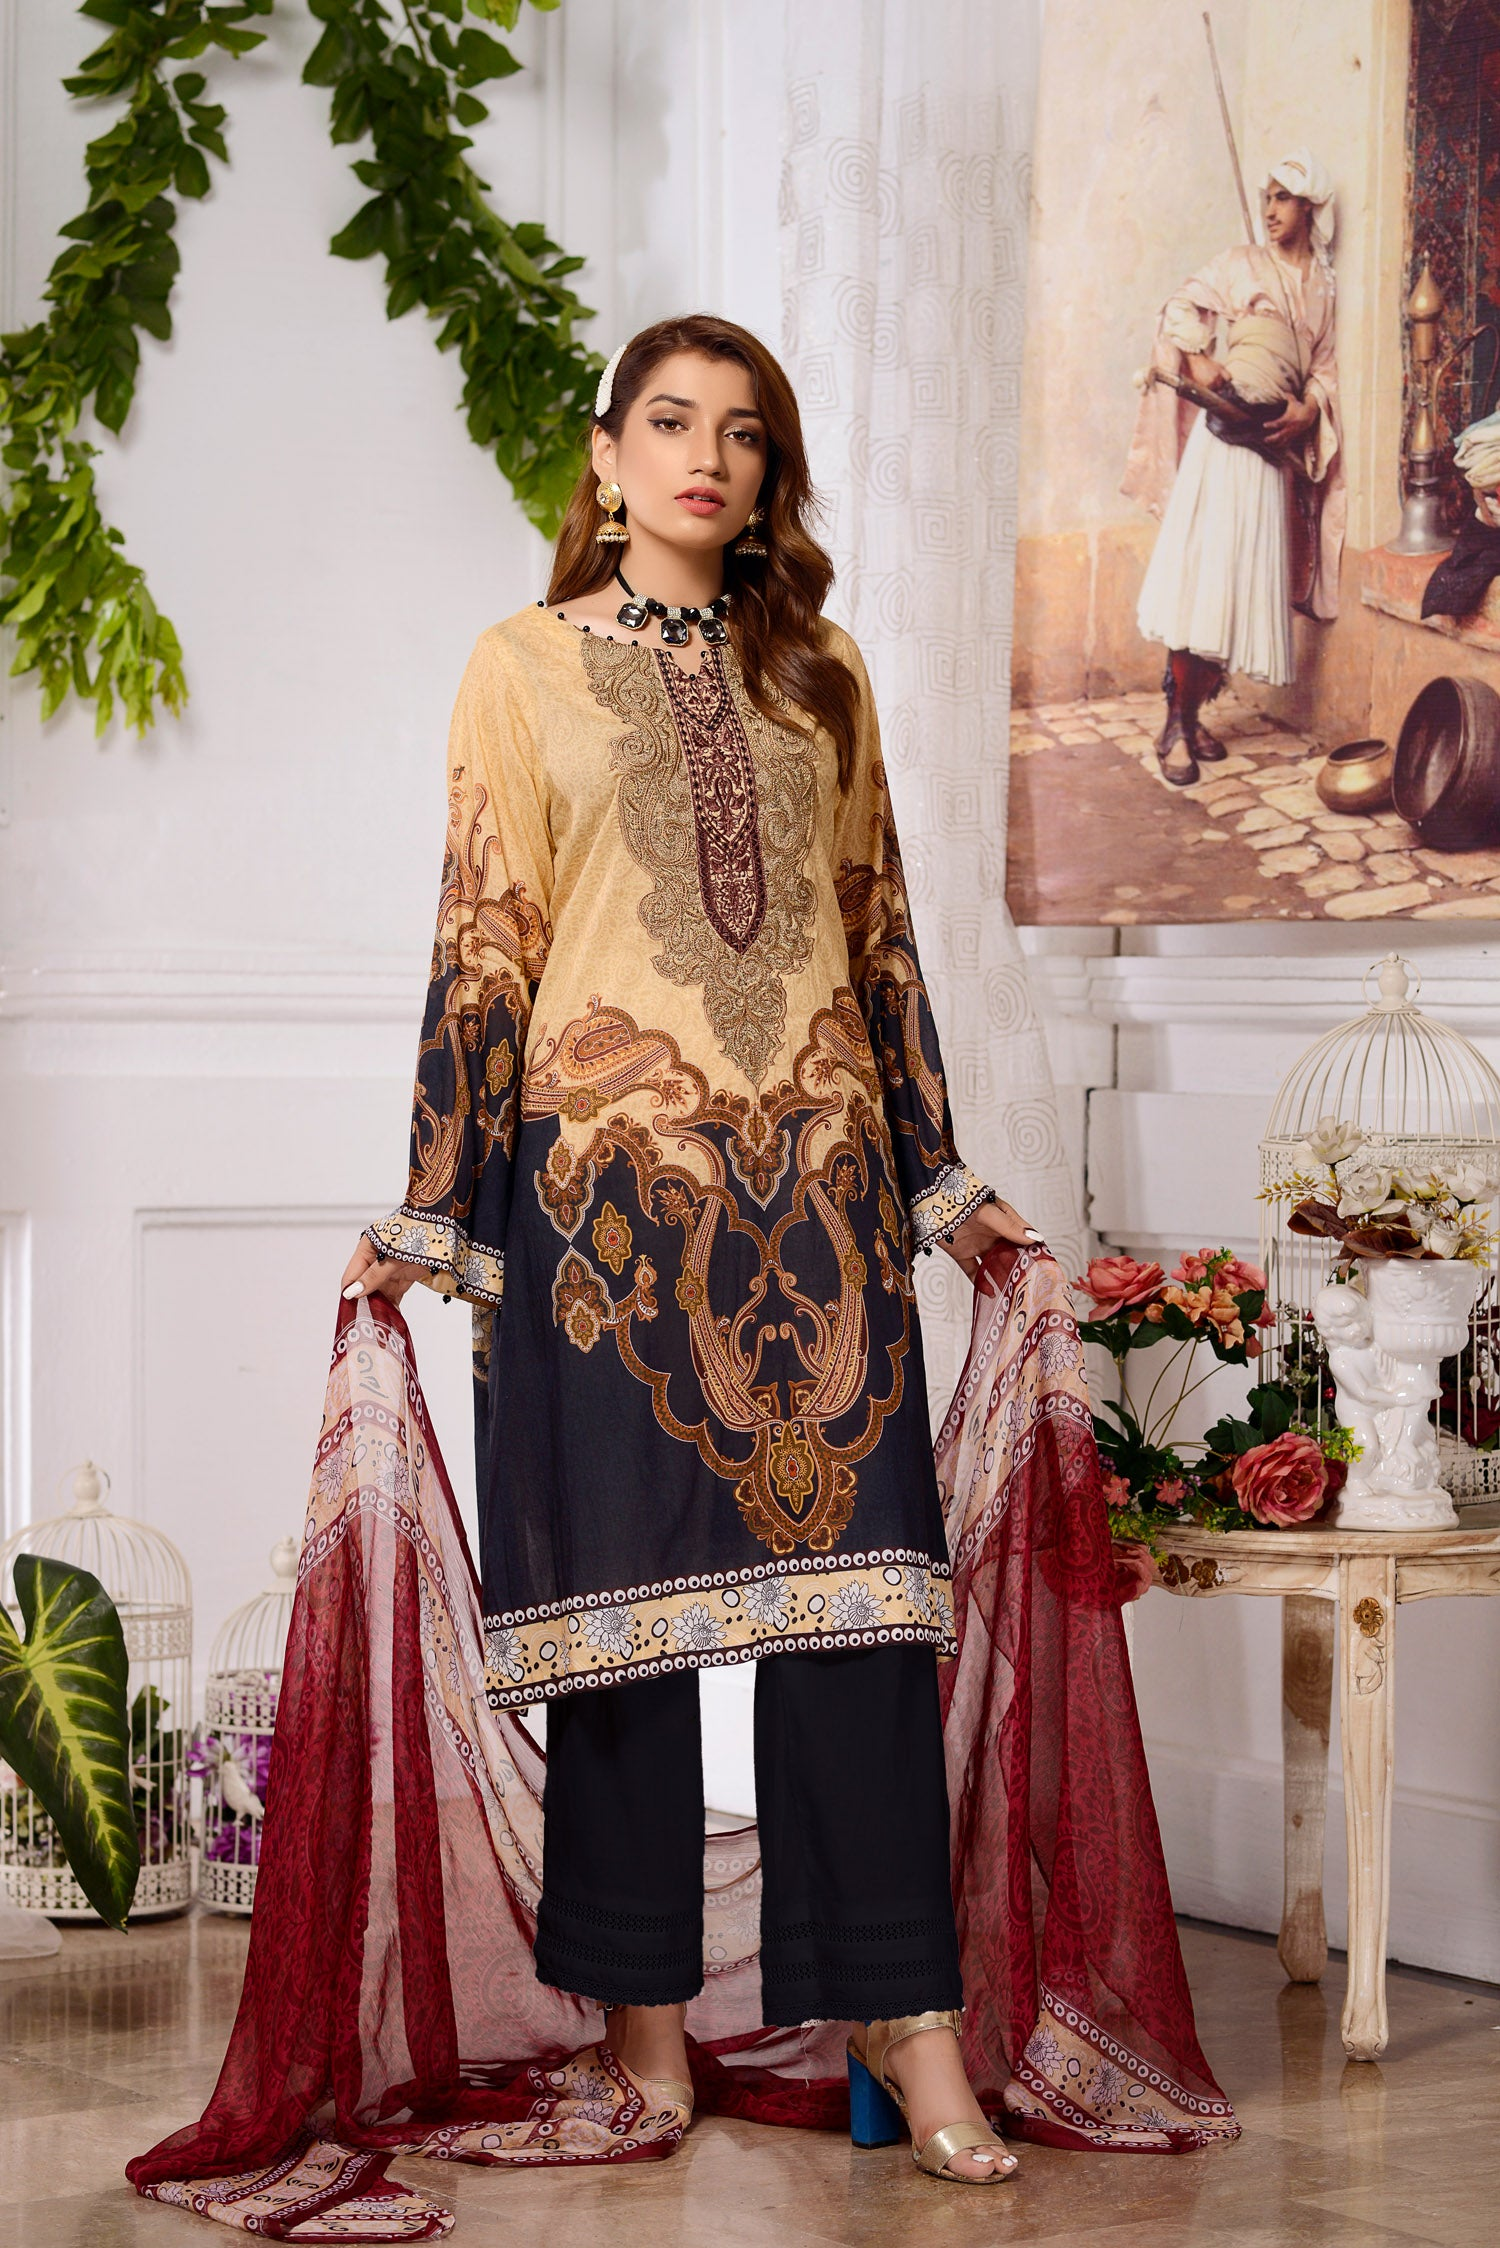 Calla - DIGITAL PRINTED & EMBROIDERED LAWN 3PC